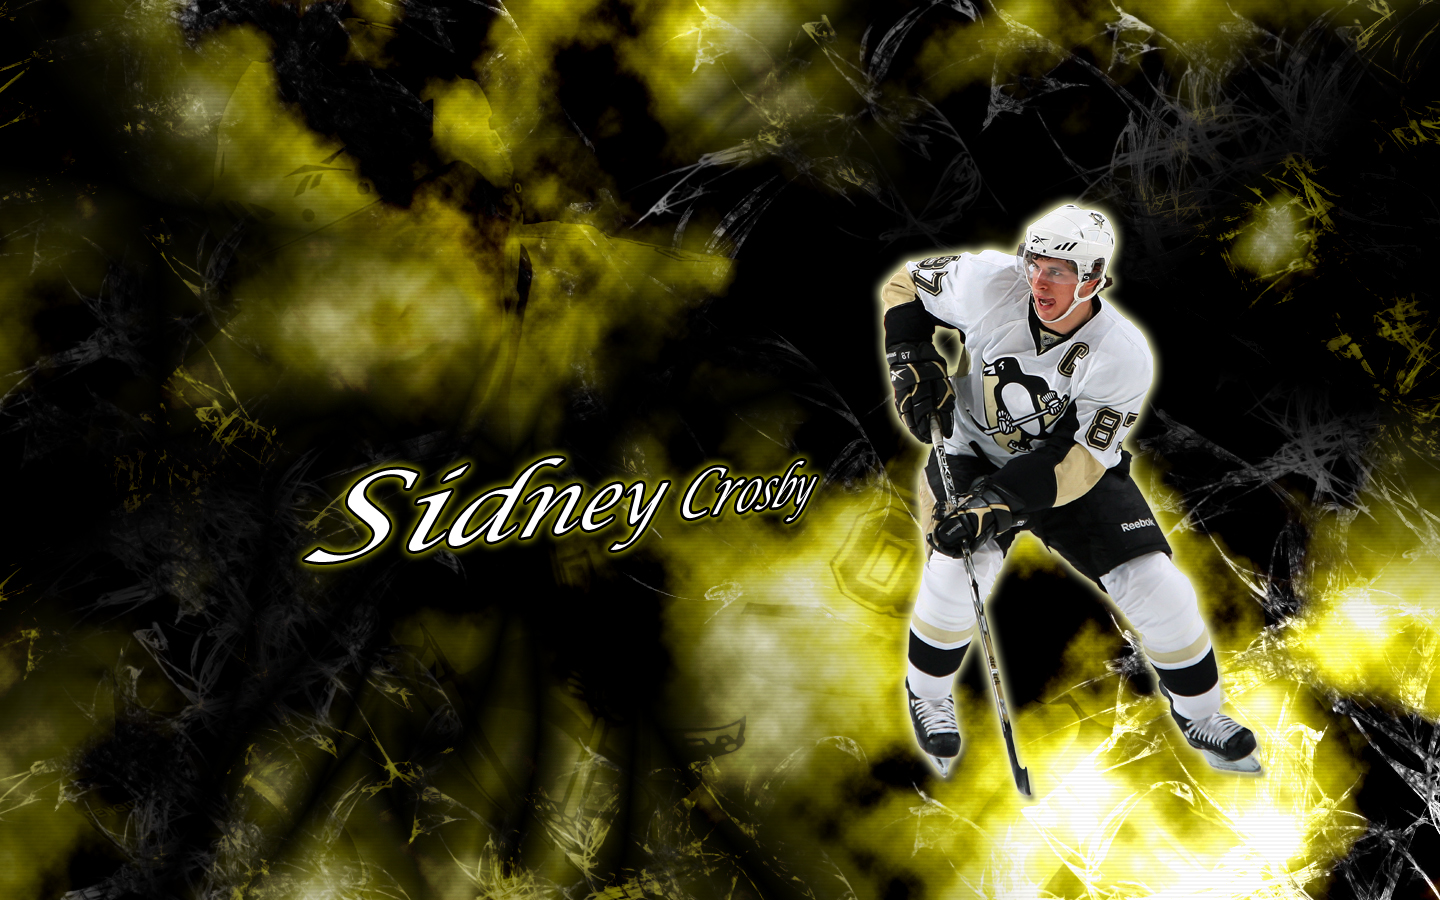 SIDNEY CROSBY Wallpaper   See best of PHOTOS of the Hockey Star 1440x900